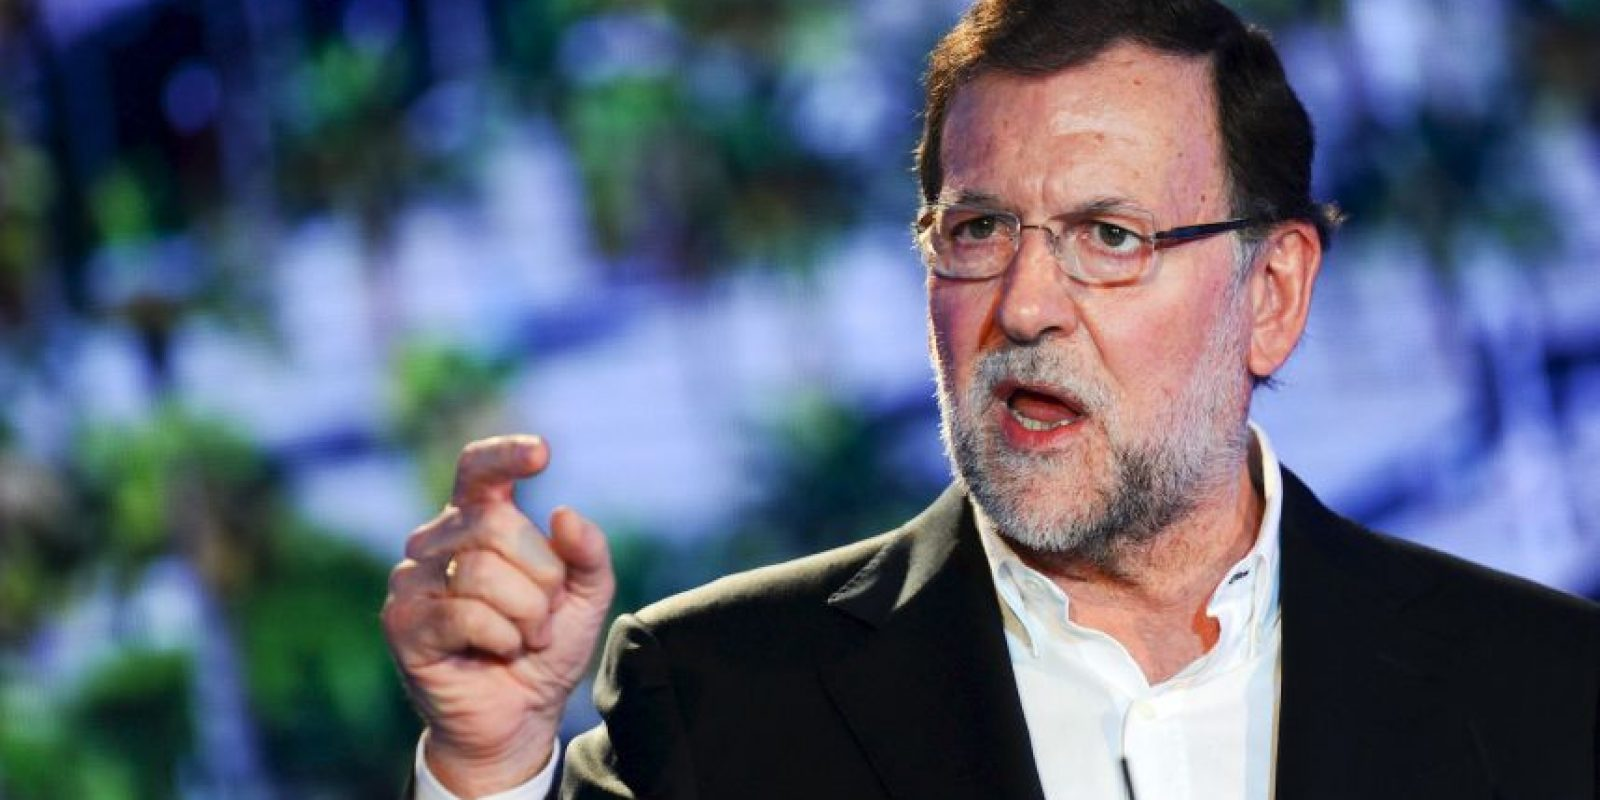 Mariano Rajoy, actual presidente del gobierno español Foto: Getty Images